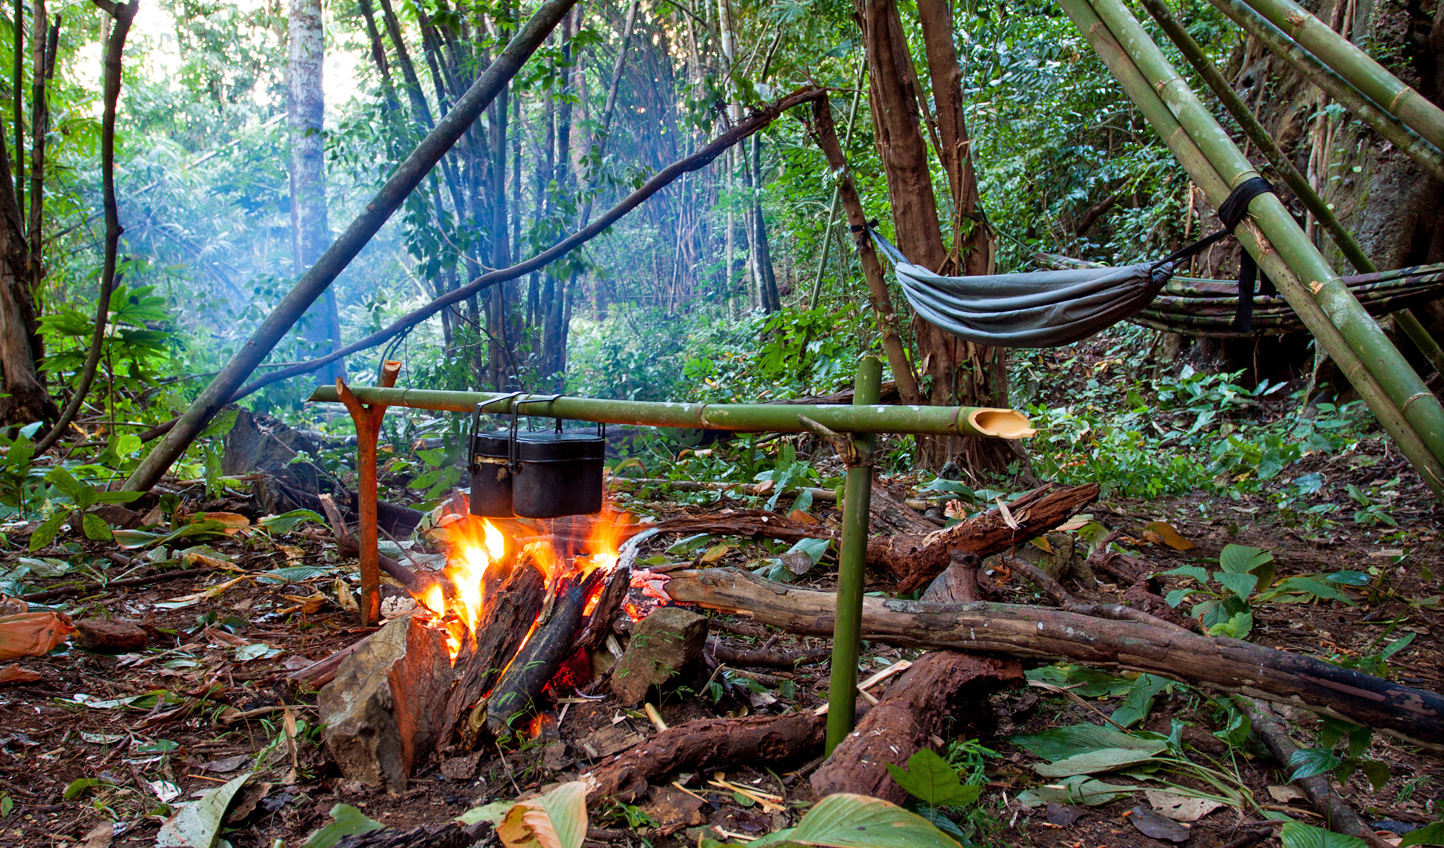 Do you have what it takes to survive in the Amazon?